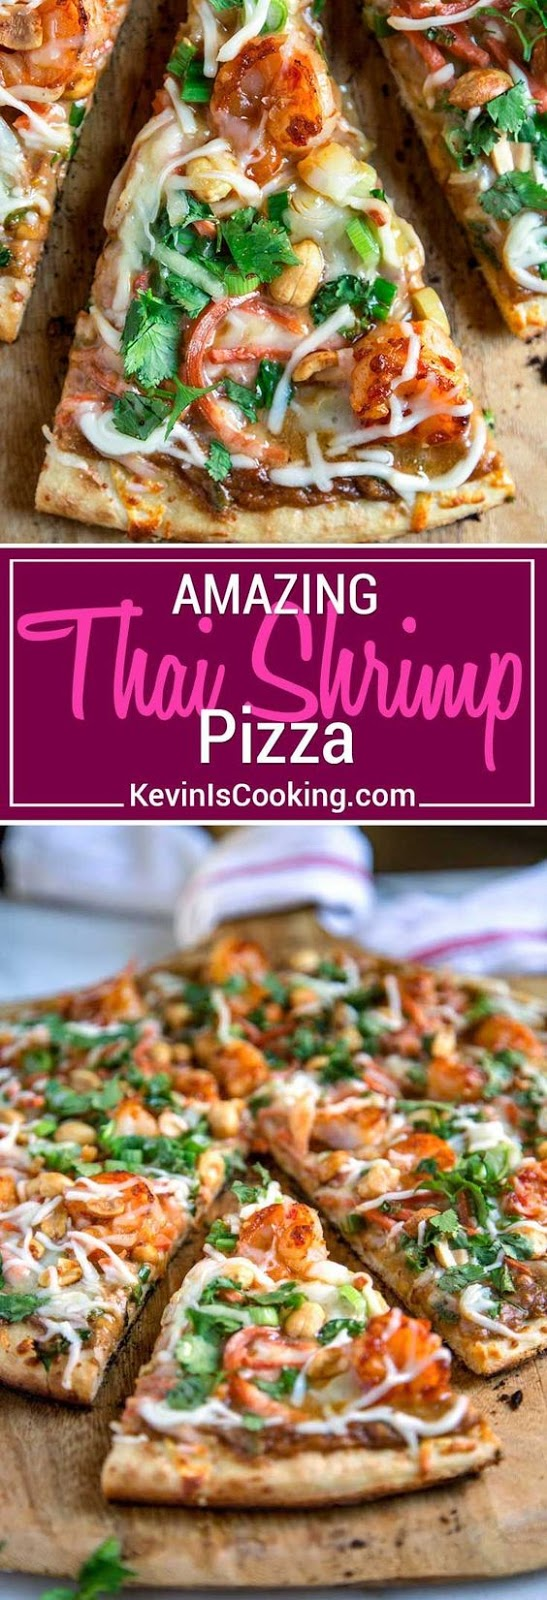 Amazing Thai Shrimp Pizza